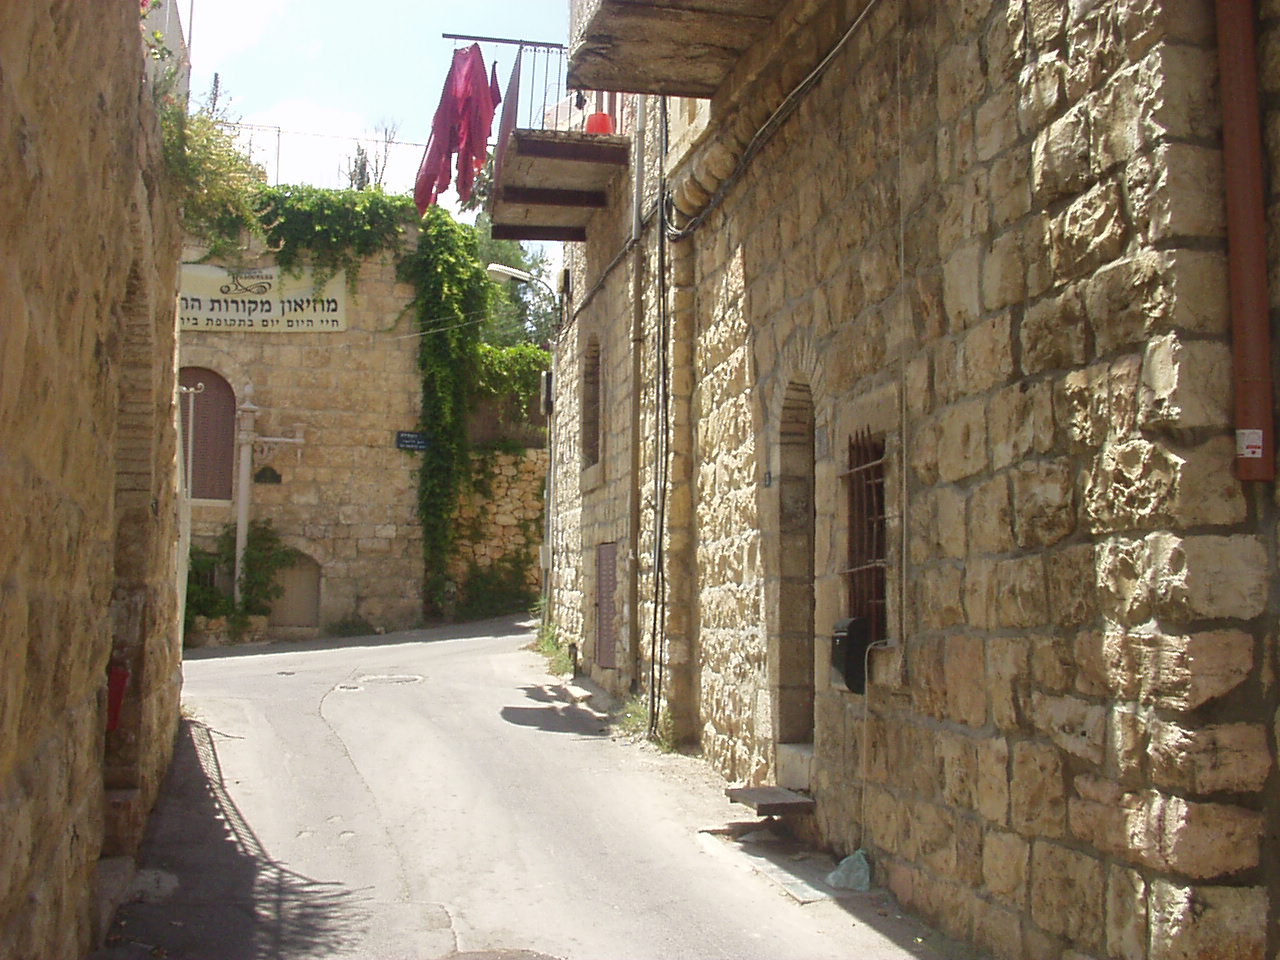 'Ayn Karim - عين كارم : An Ein Karim alley way in the OLD quarter, June 2002